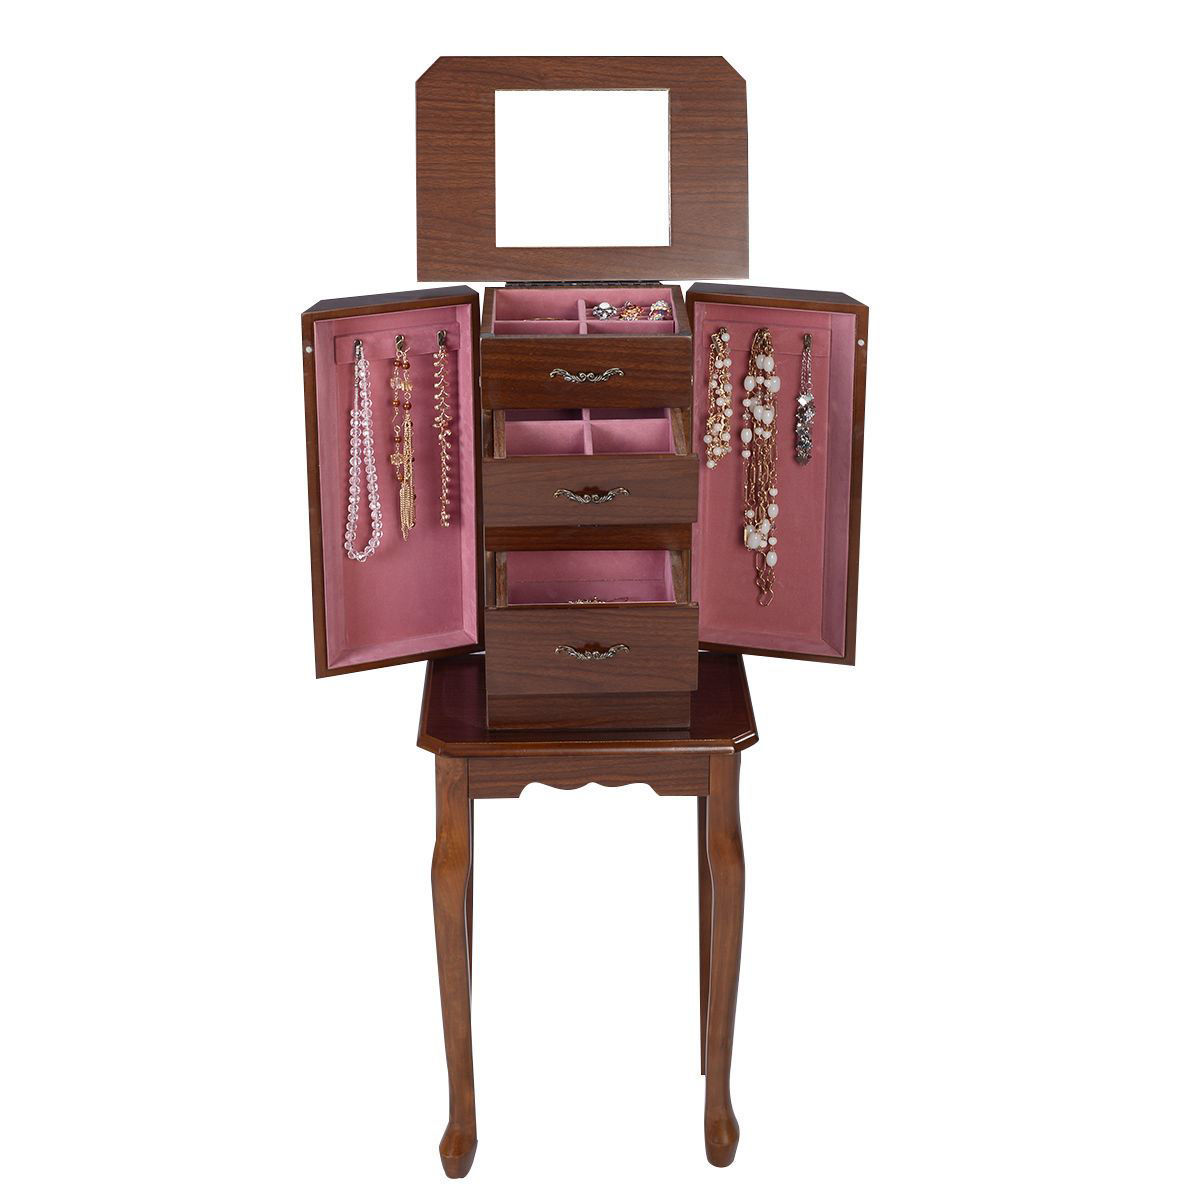 Picture of Armoire Jewelry Cabinet Wood Box Storage Organizer